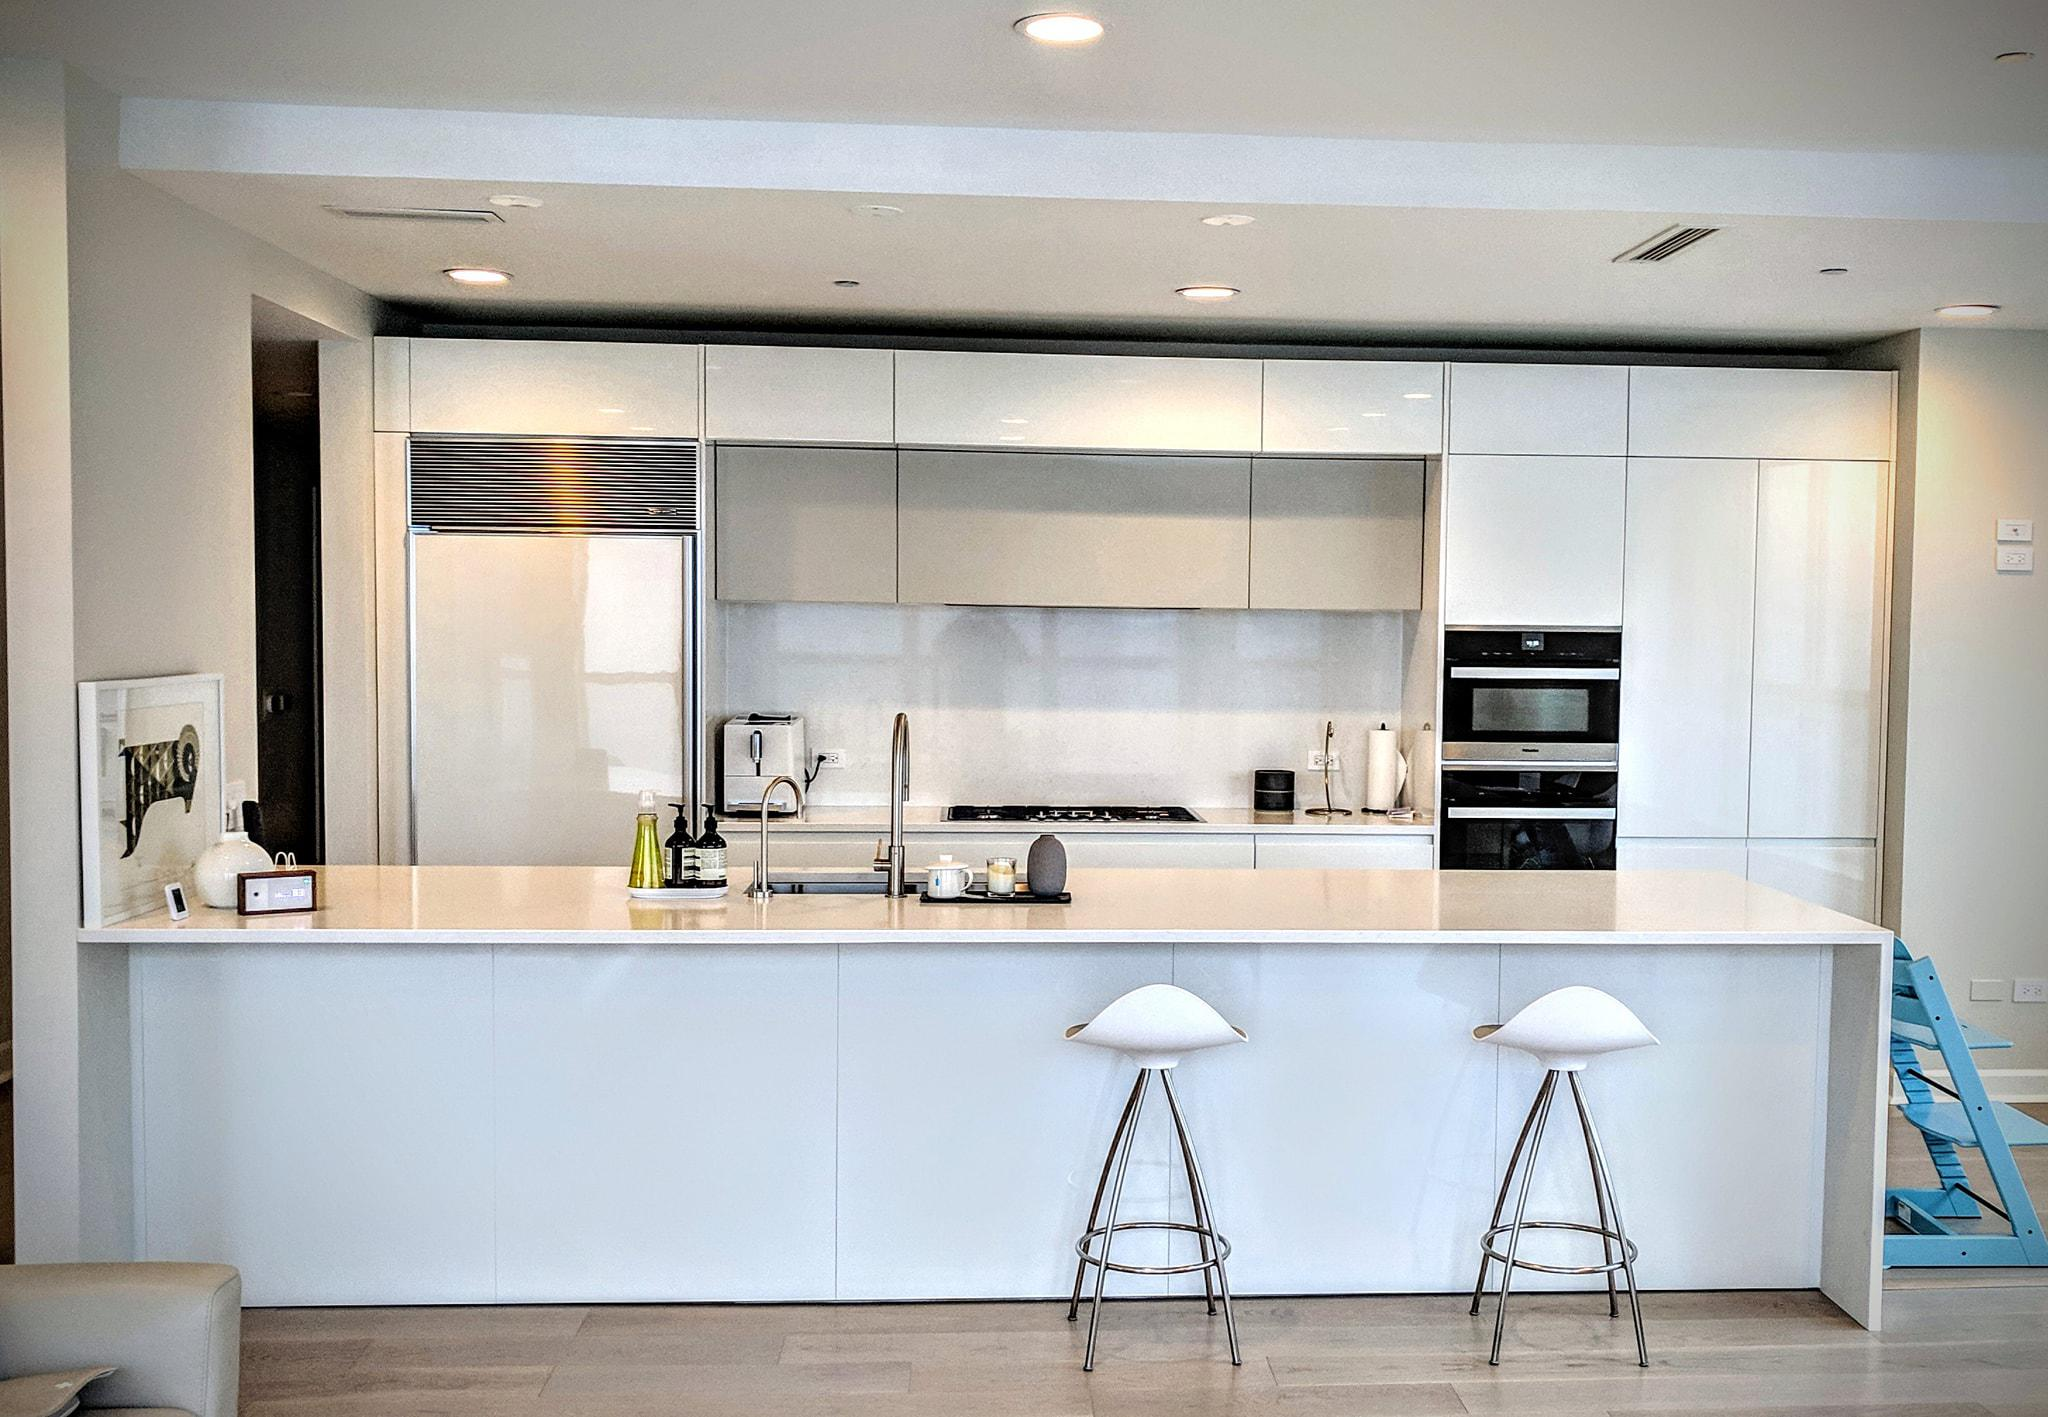 We make sure your kitchen remodel goes smoothly without any extra stress!